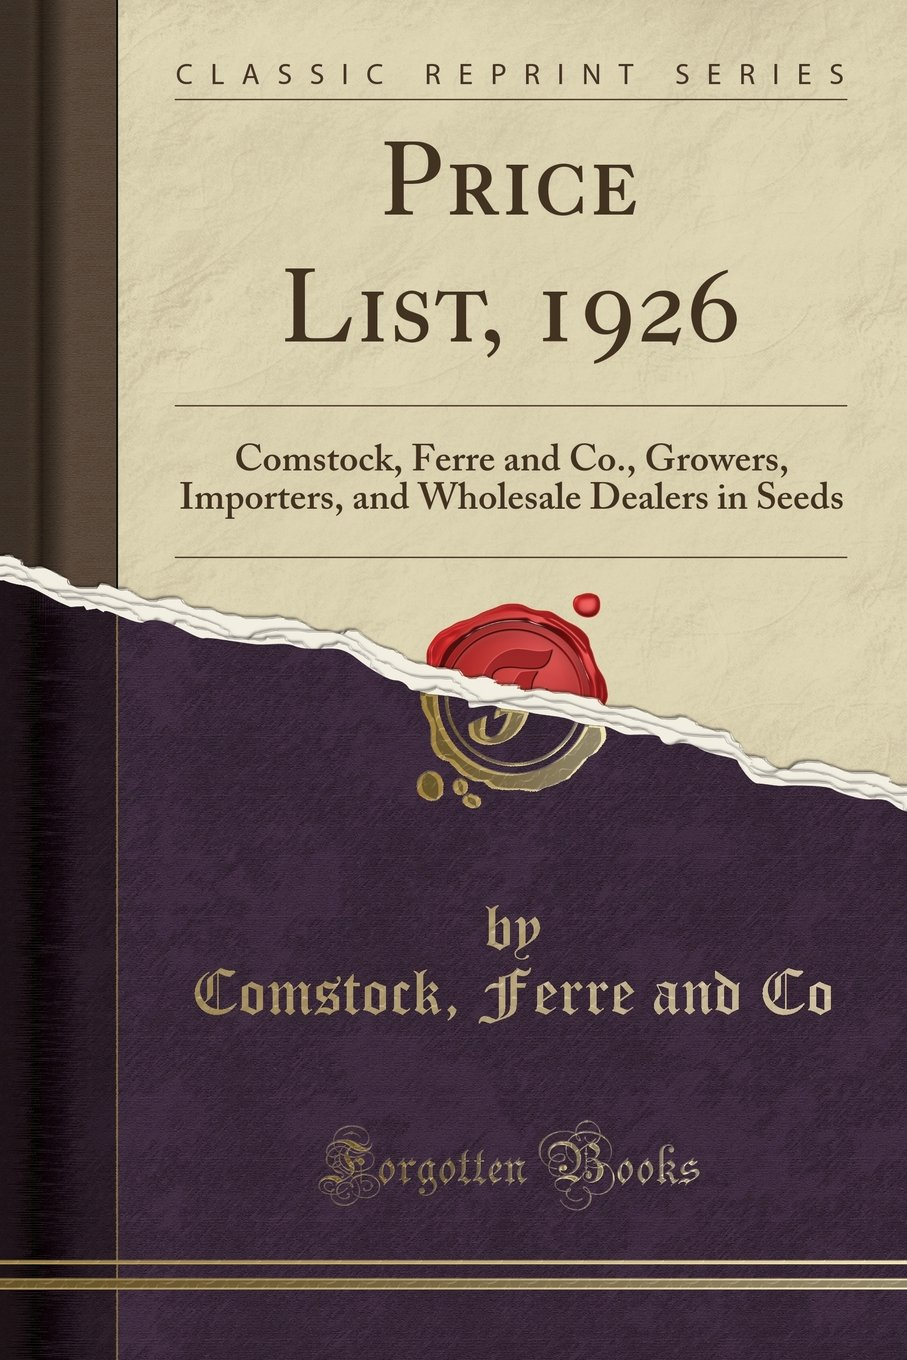 Price List, 1926: Comstock, Ferre and Co., Growers, Importers, and Wholesale Dealers in Seeds (Classic Reprint) ebook